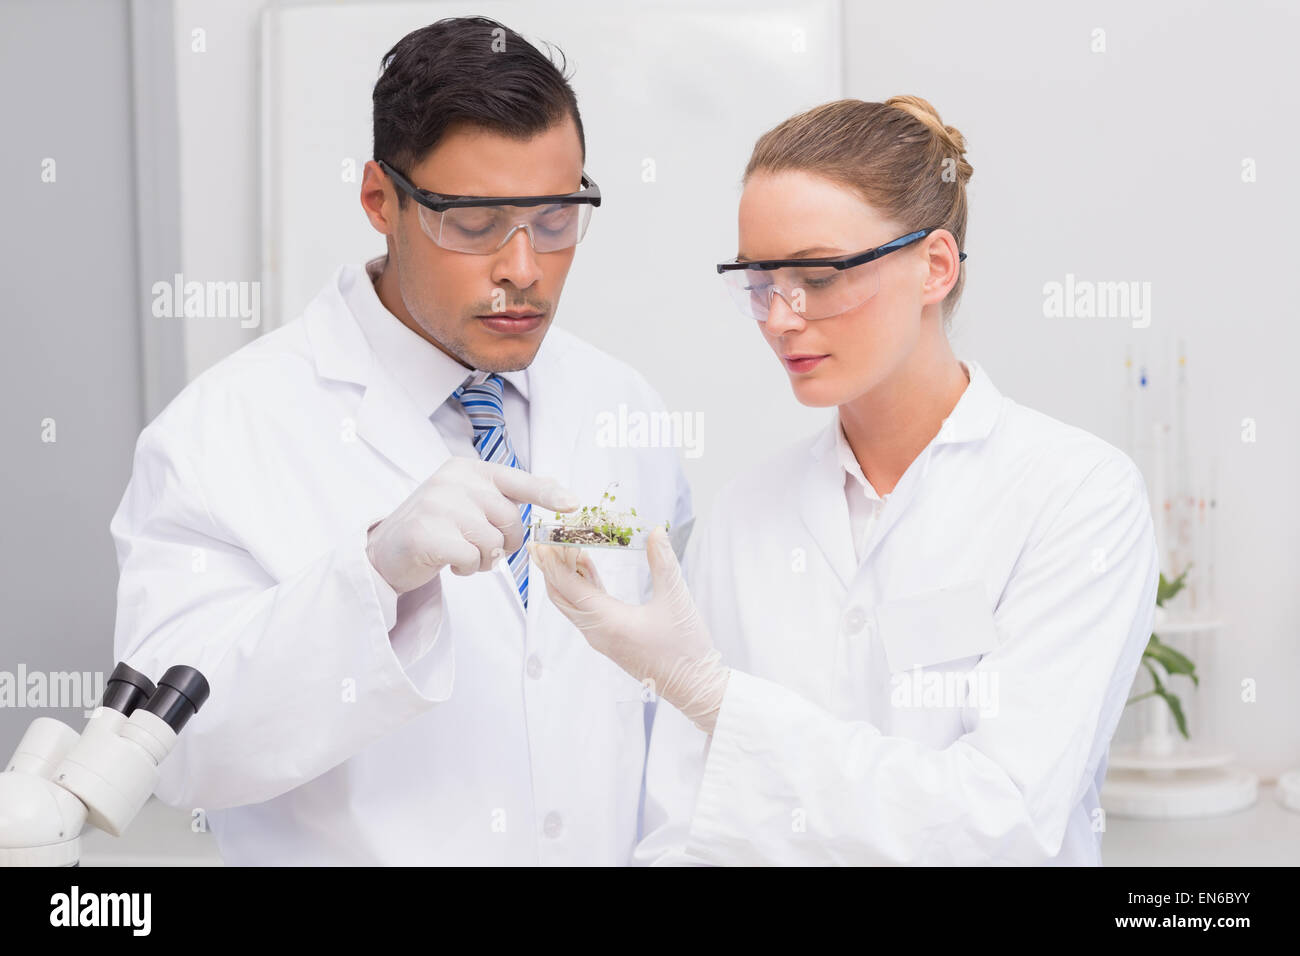 Scientists holding a petri dish with tests of plants Stock Photo